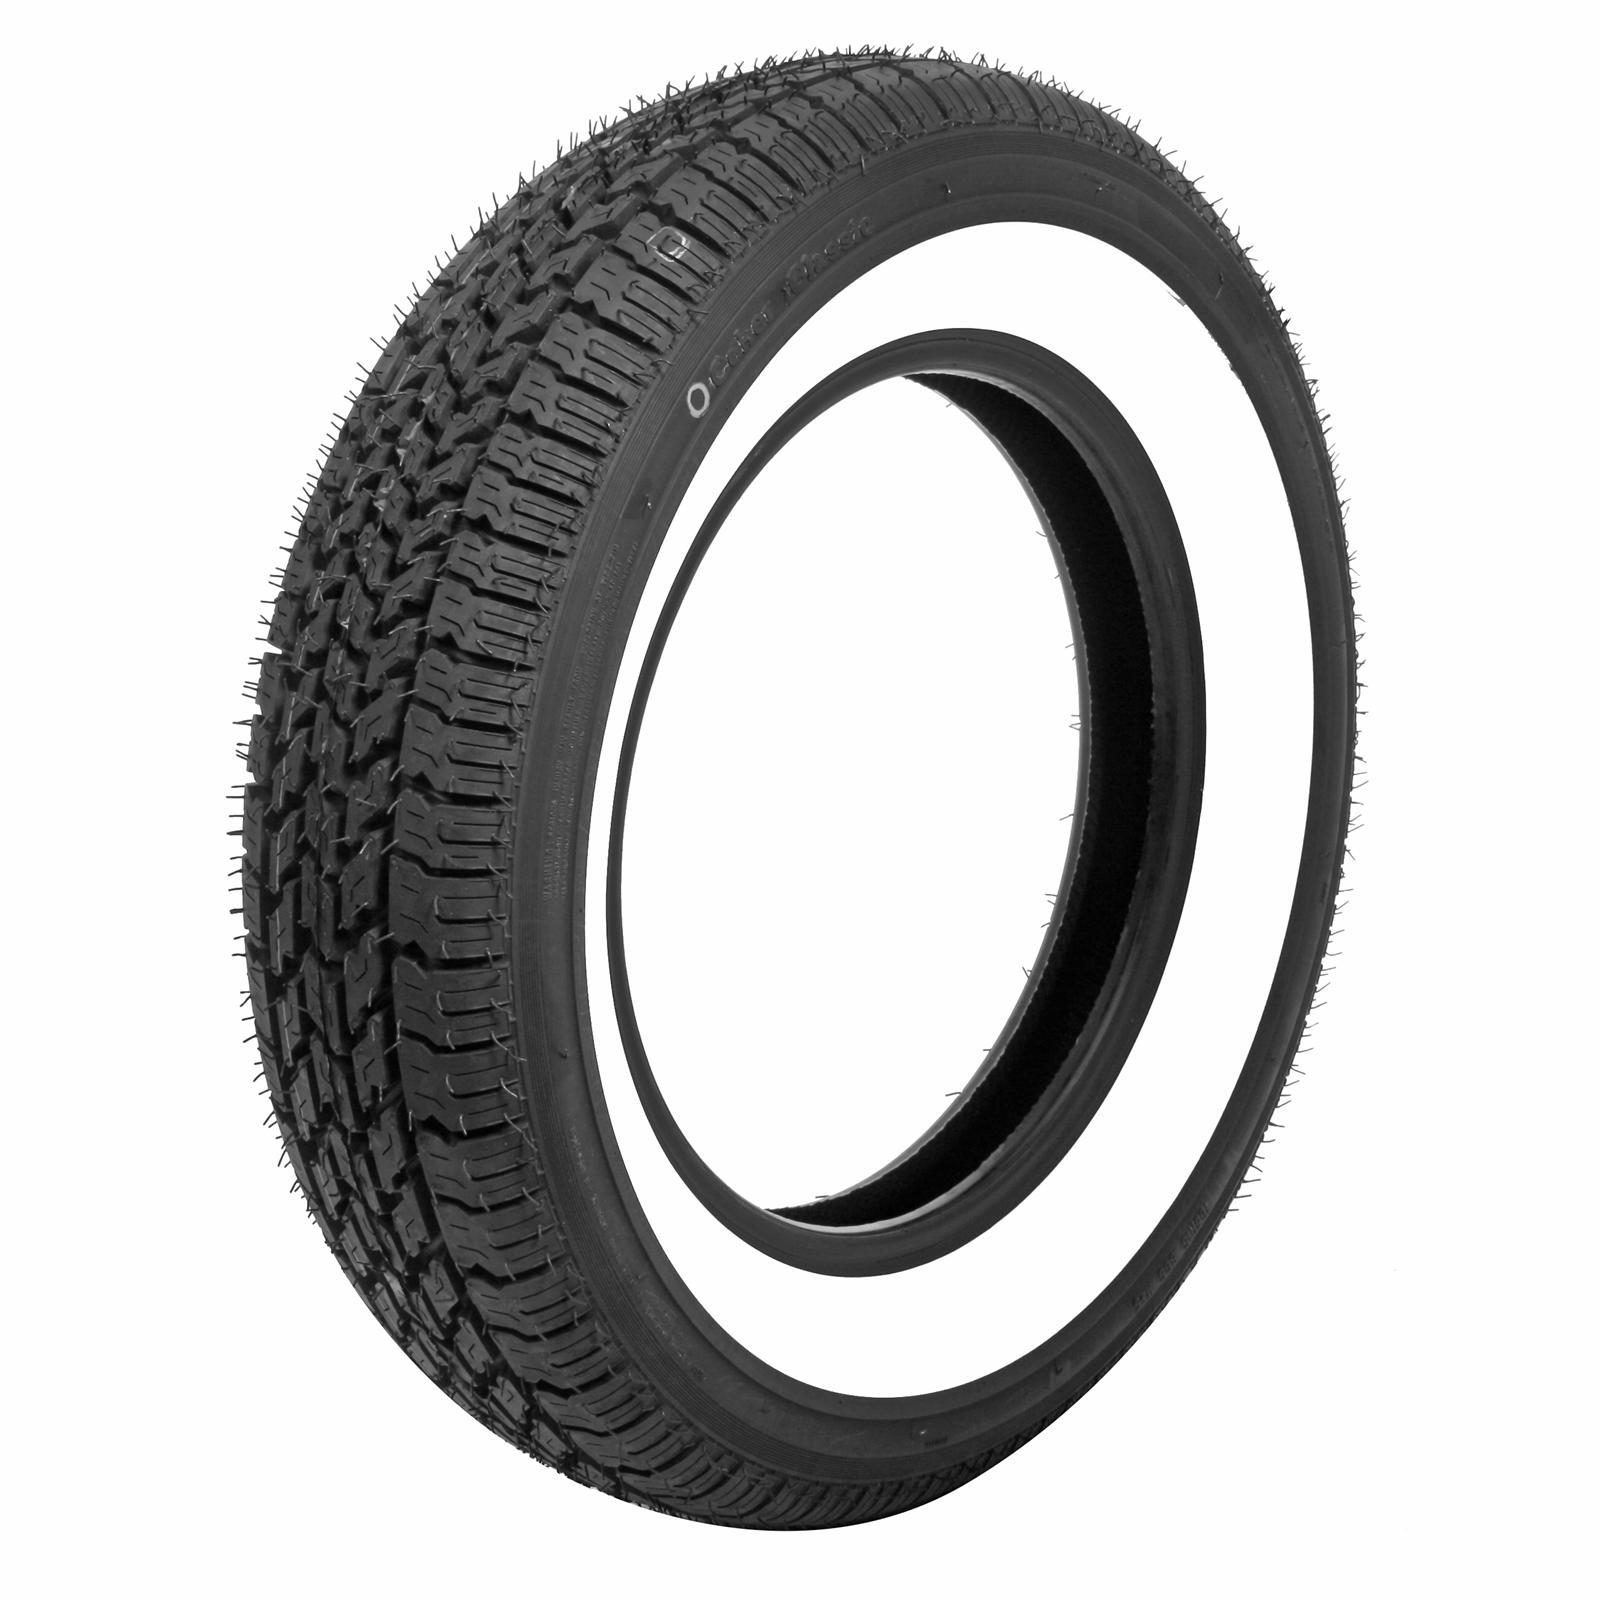 Coker 2 1/4in Whitewall Nostalgia Radial Tire 165-15 ...